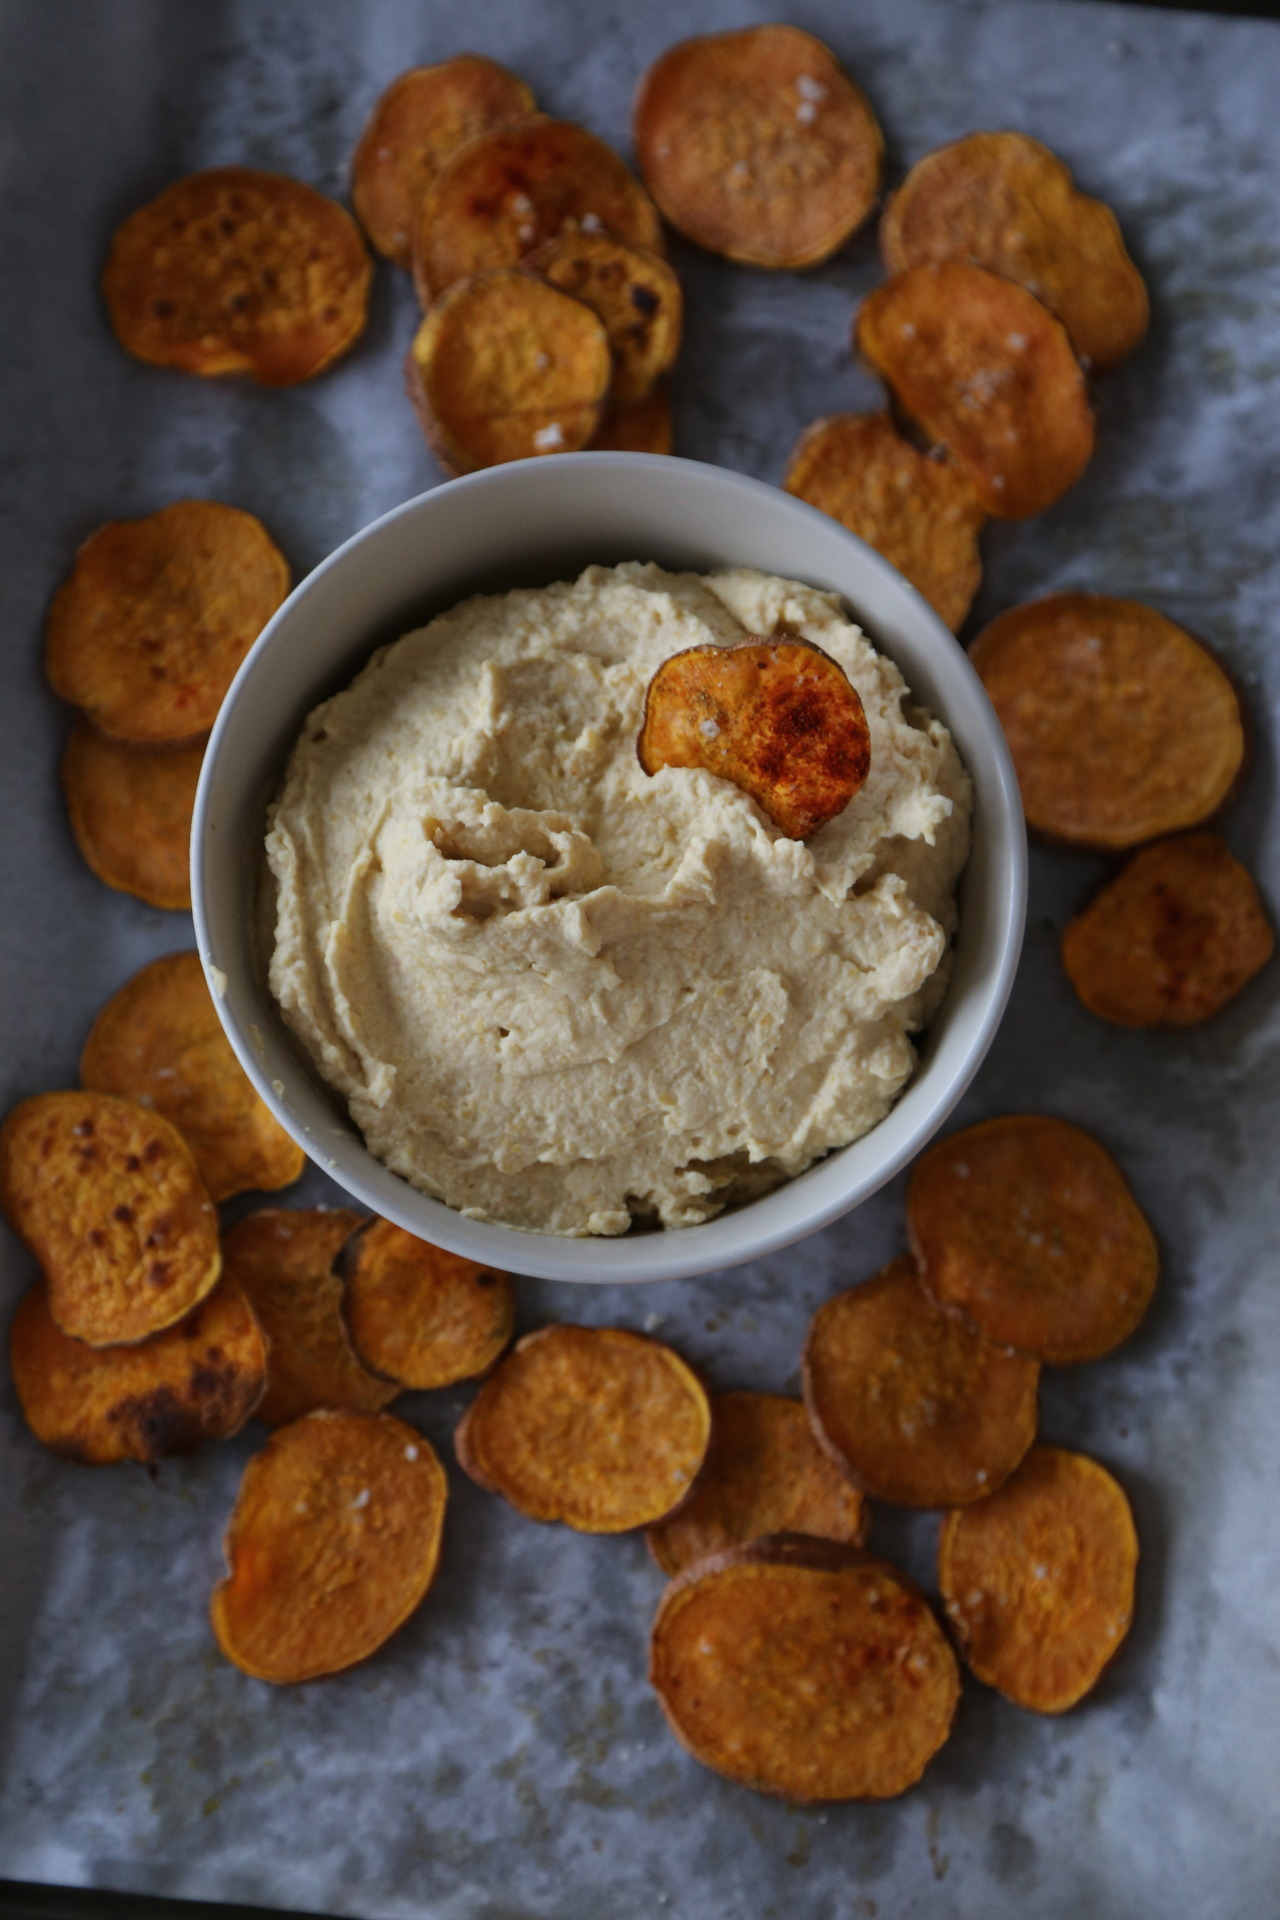 Spicy chips and hummus